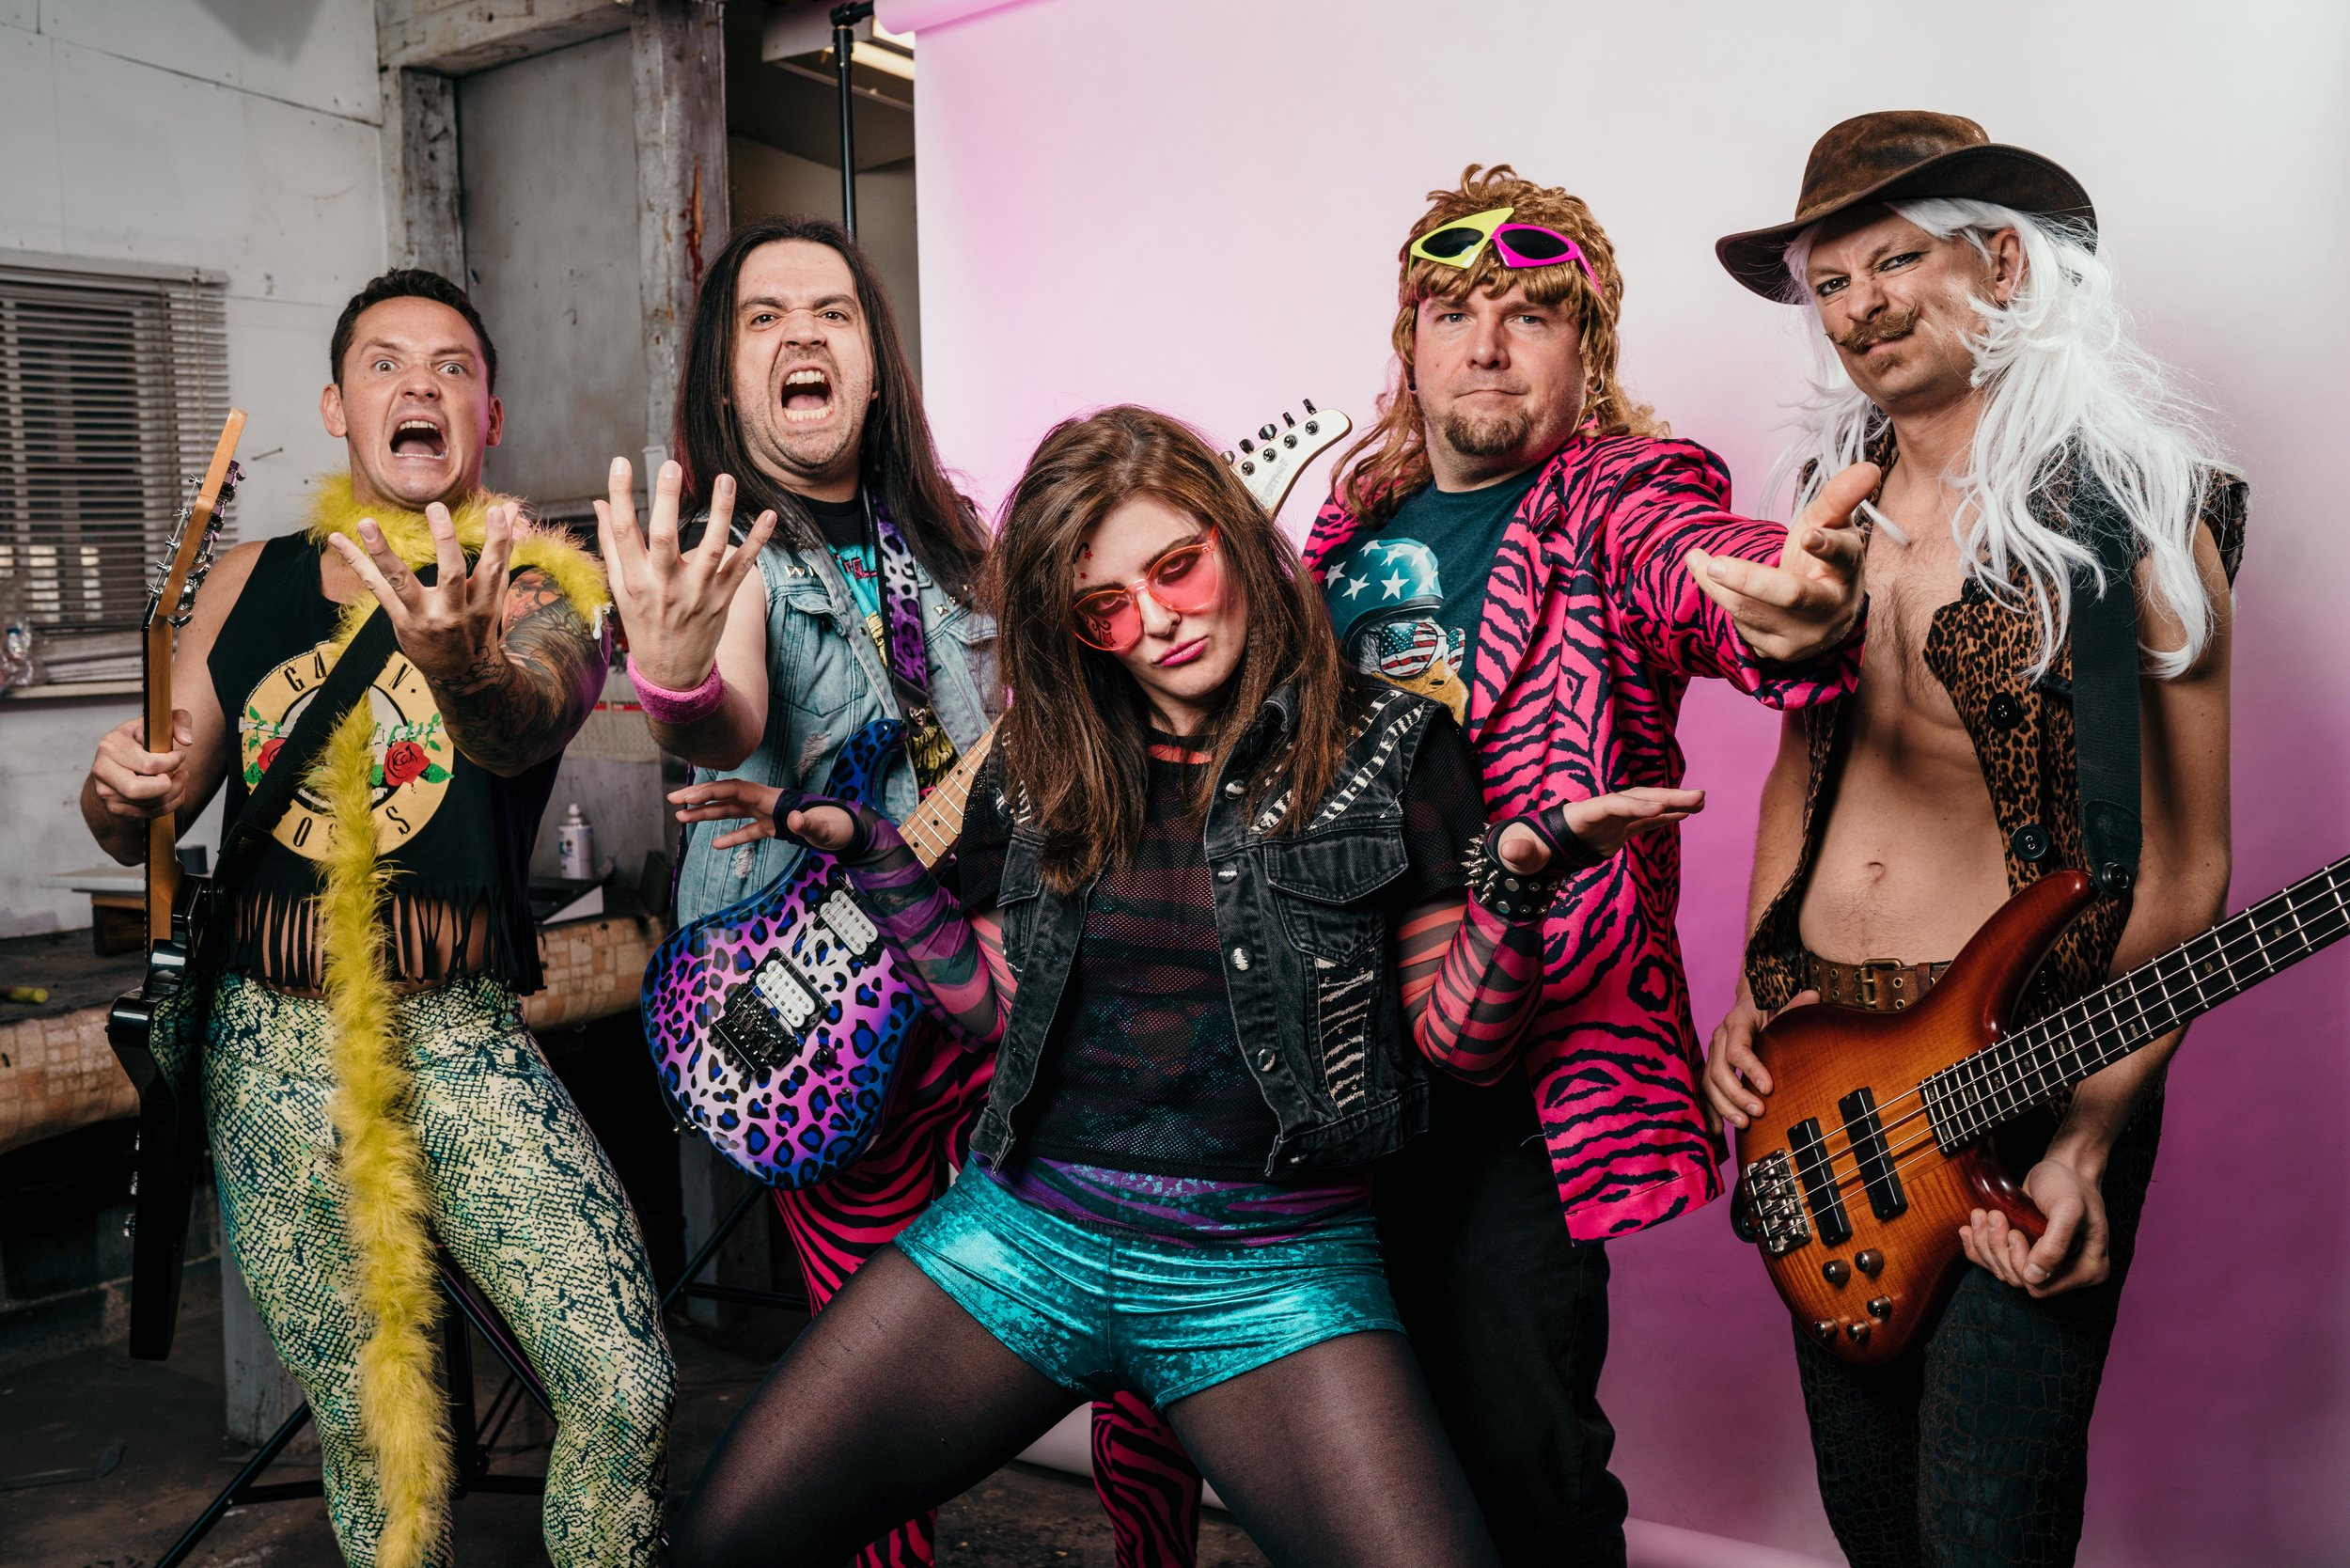 denver commercial photographer midnight party machine cover band -DSC08361.jpg